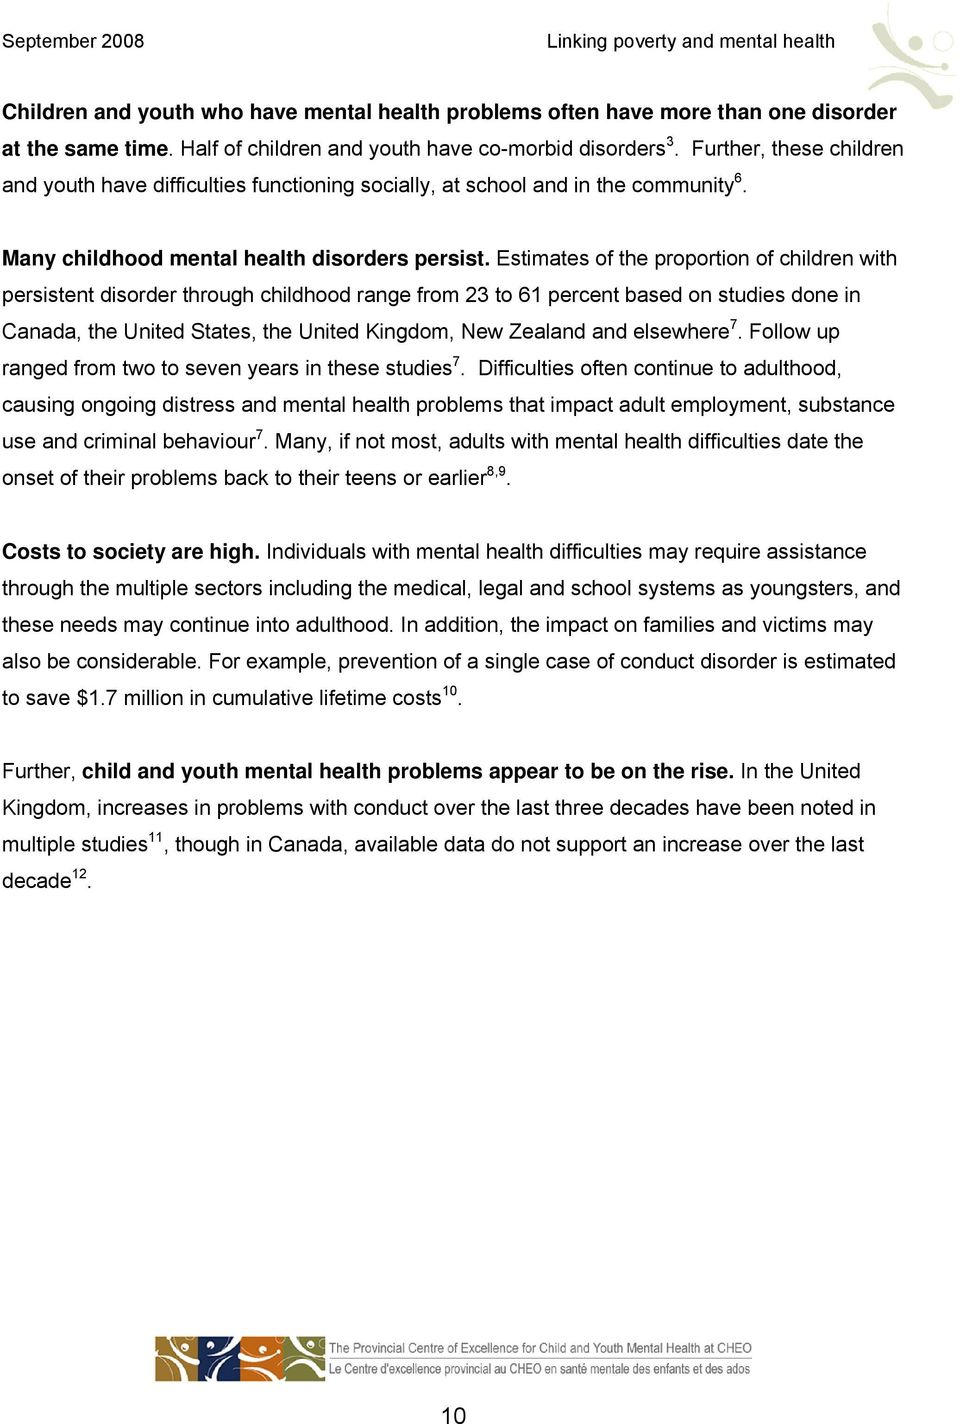 Linking poverty and mental health: A lifespan view